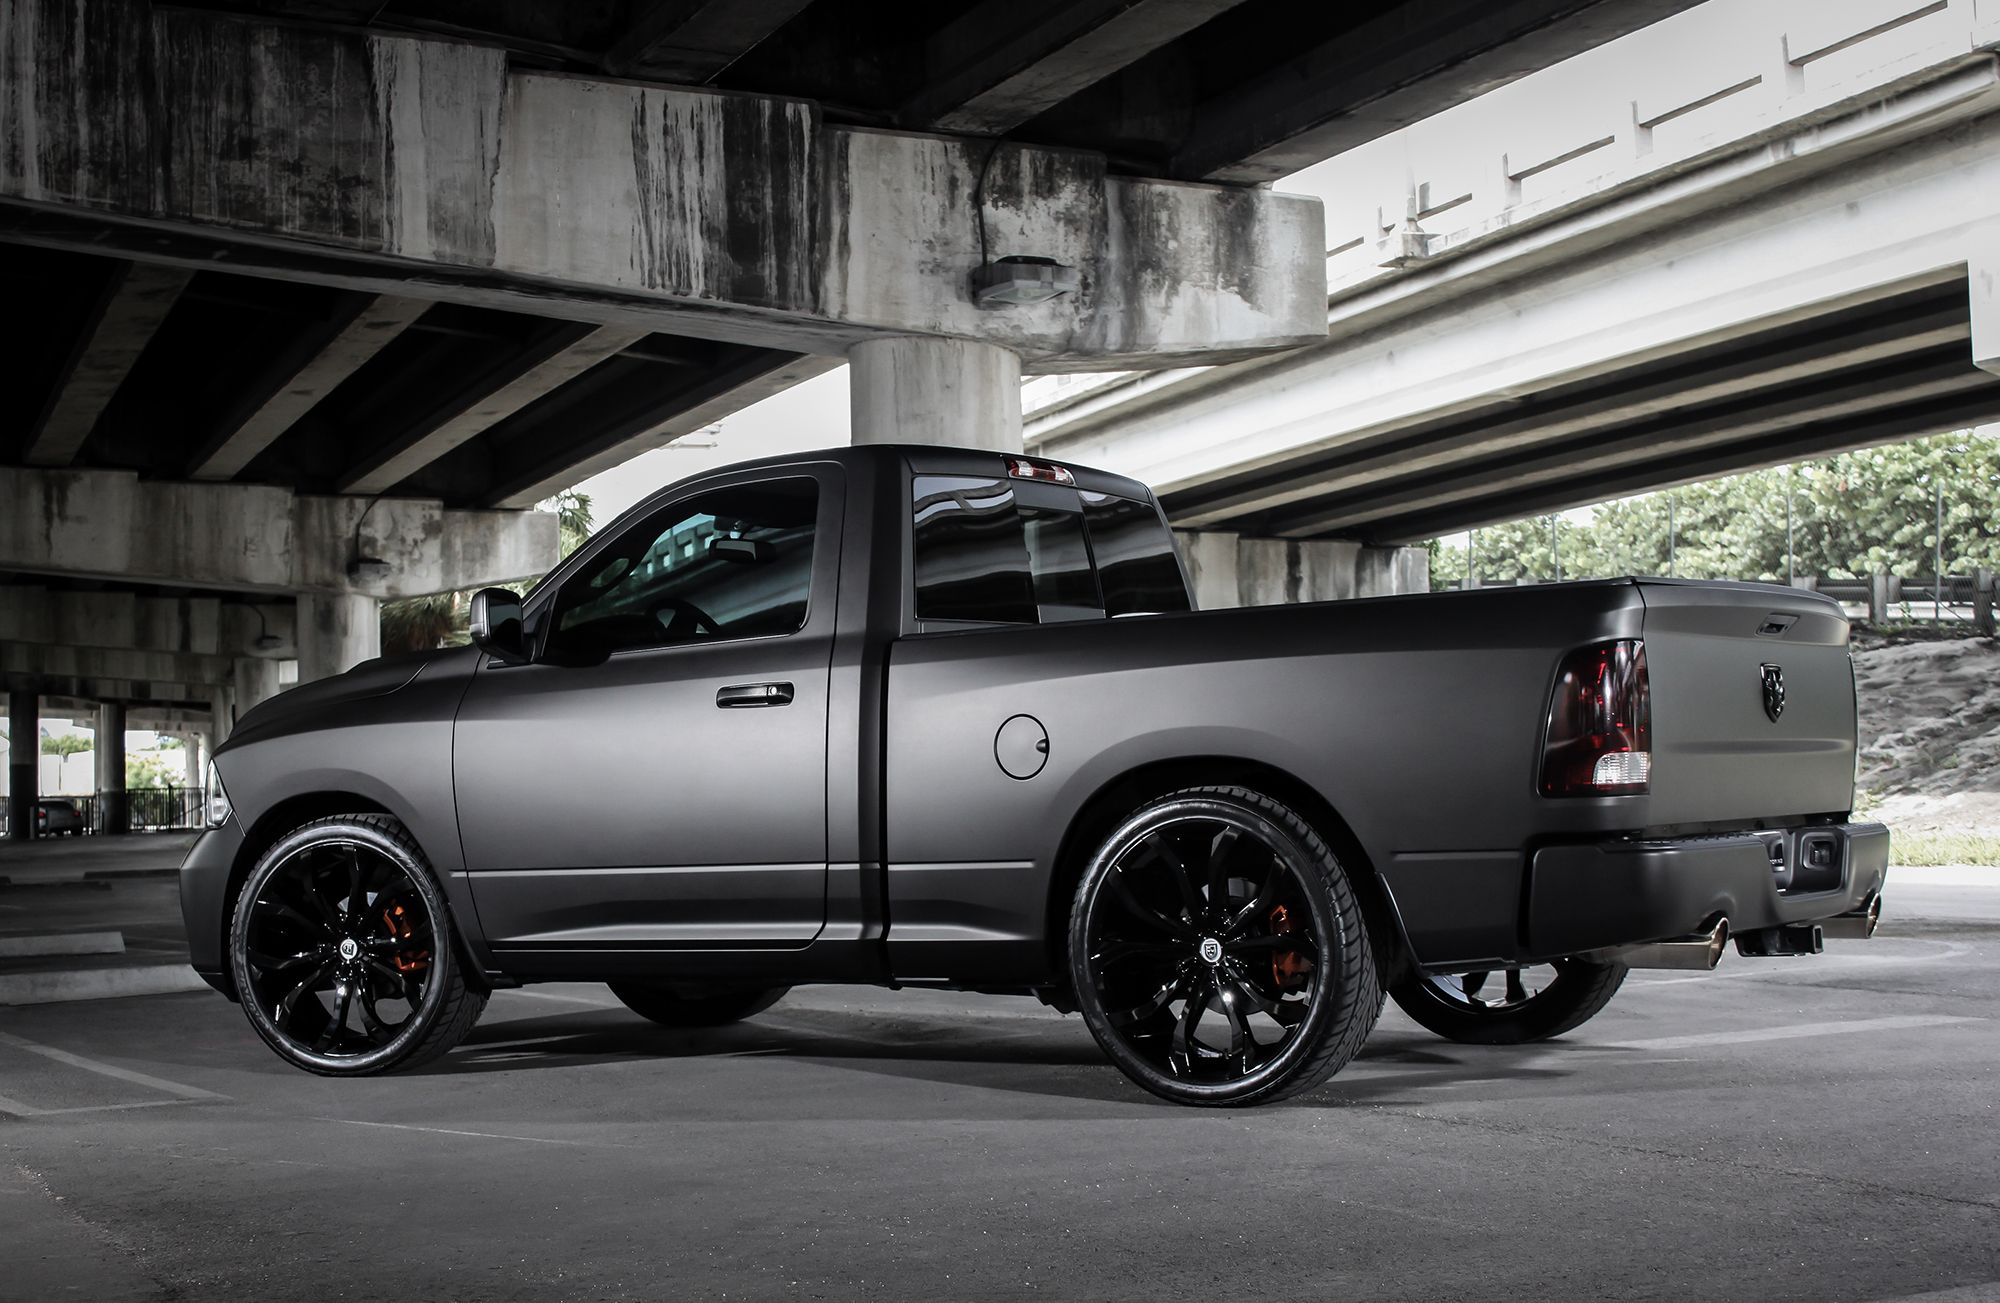 Dodge Ram Matte Black I really want this car definitely will stand